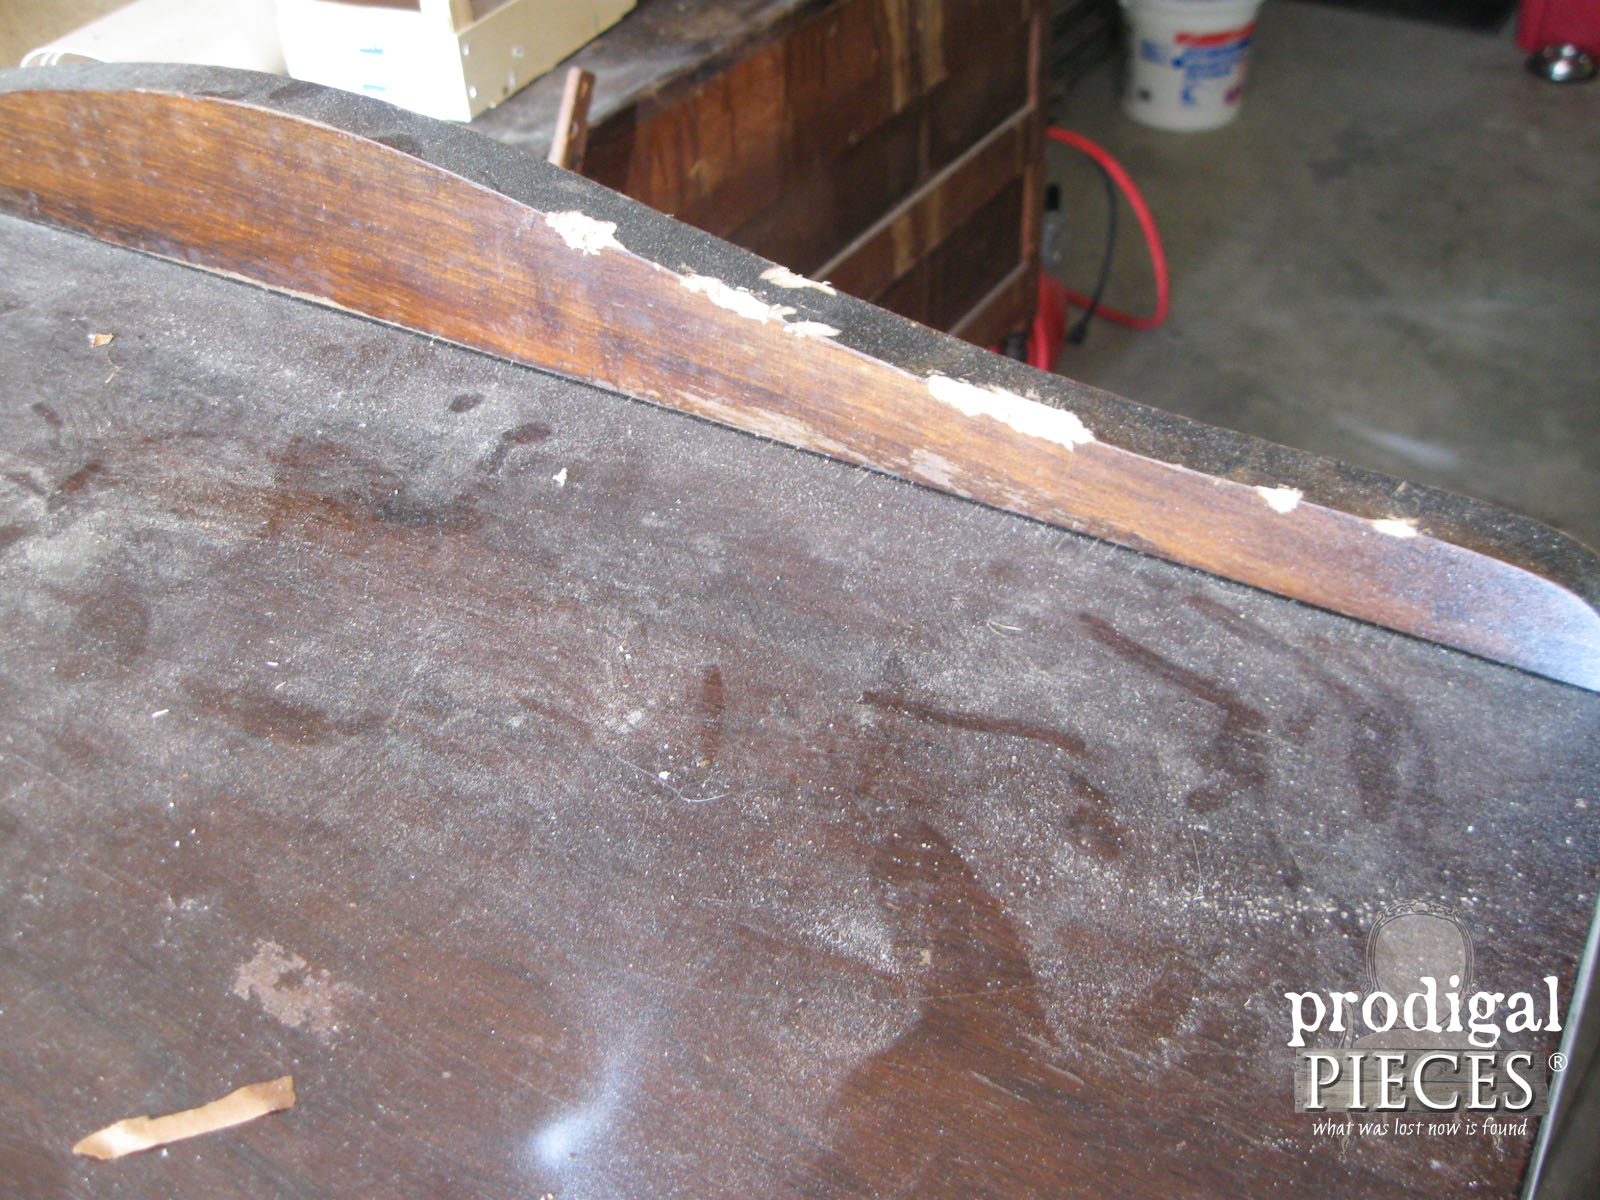 Beaten Up Top of Antique Chest | Prodigal Pieces | www.prodigalpieces.com